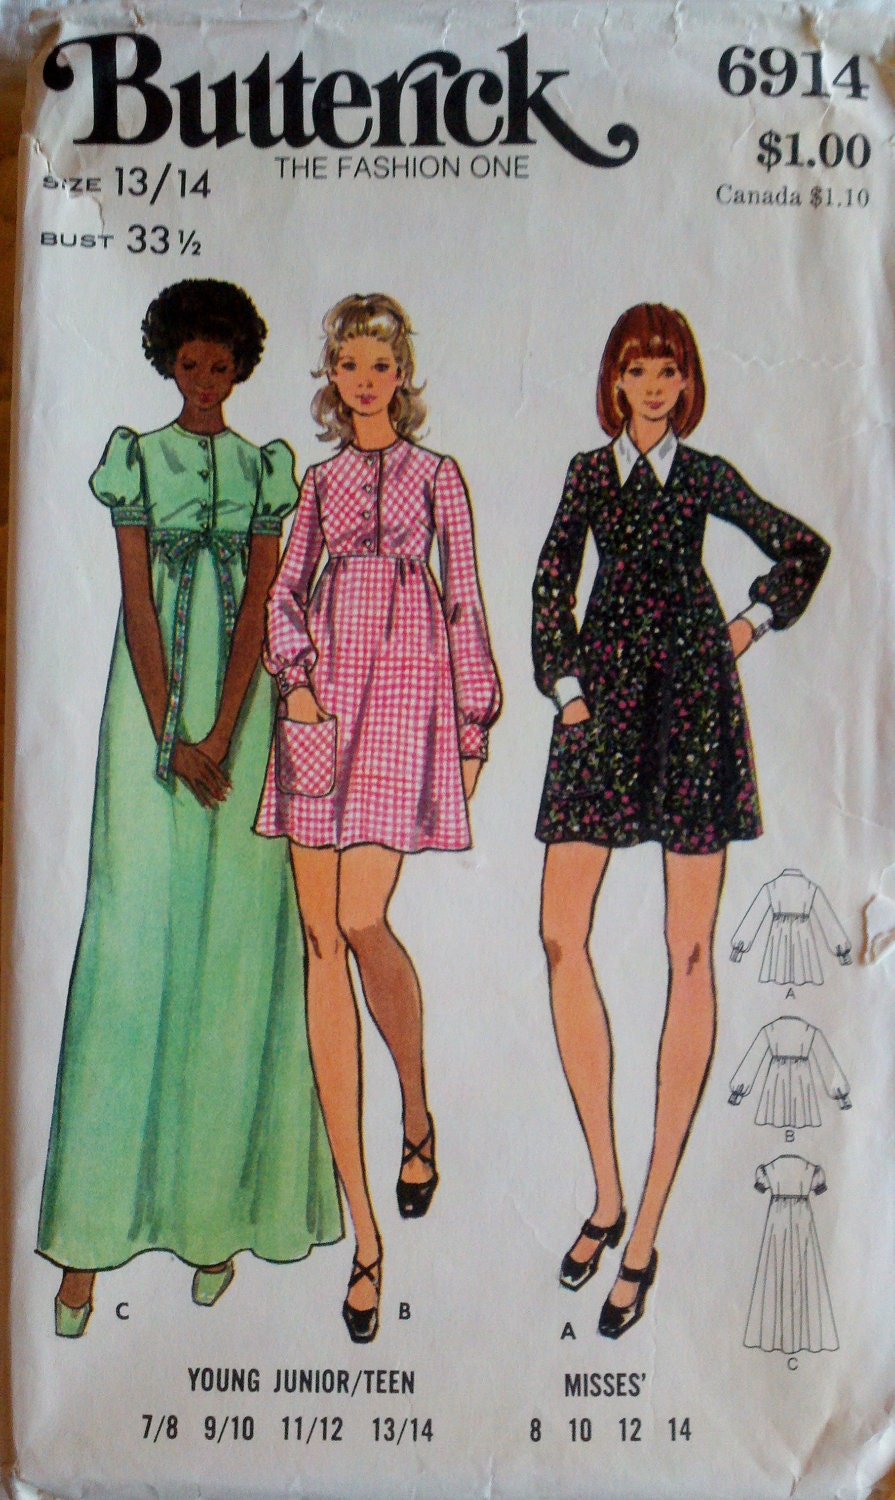 Sewing Patterns - Downloadable, Beginner, Novice, Intermediate